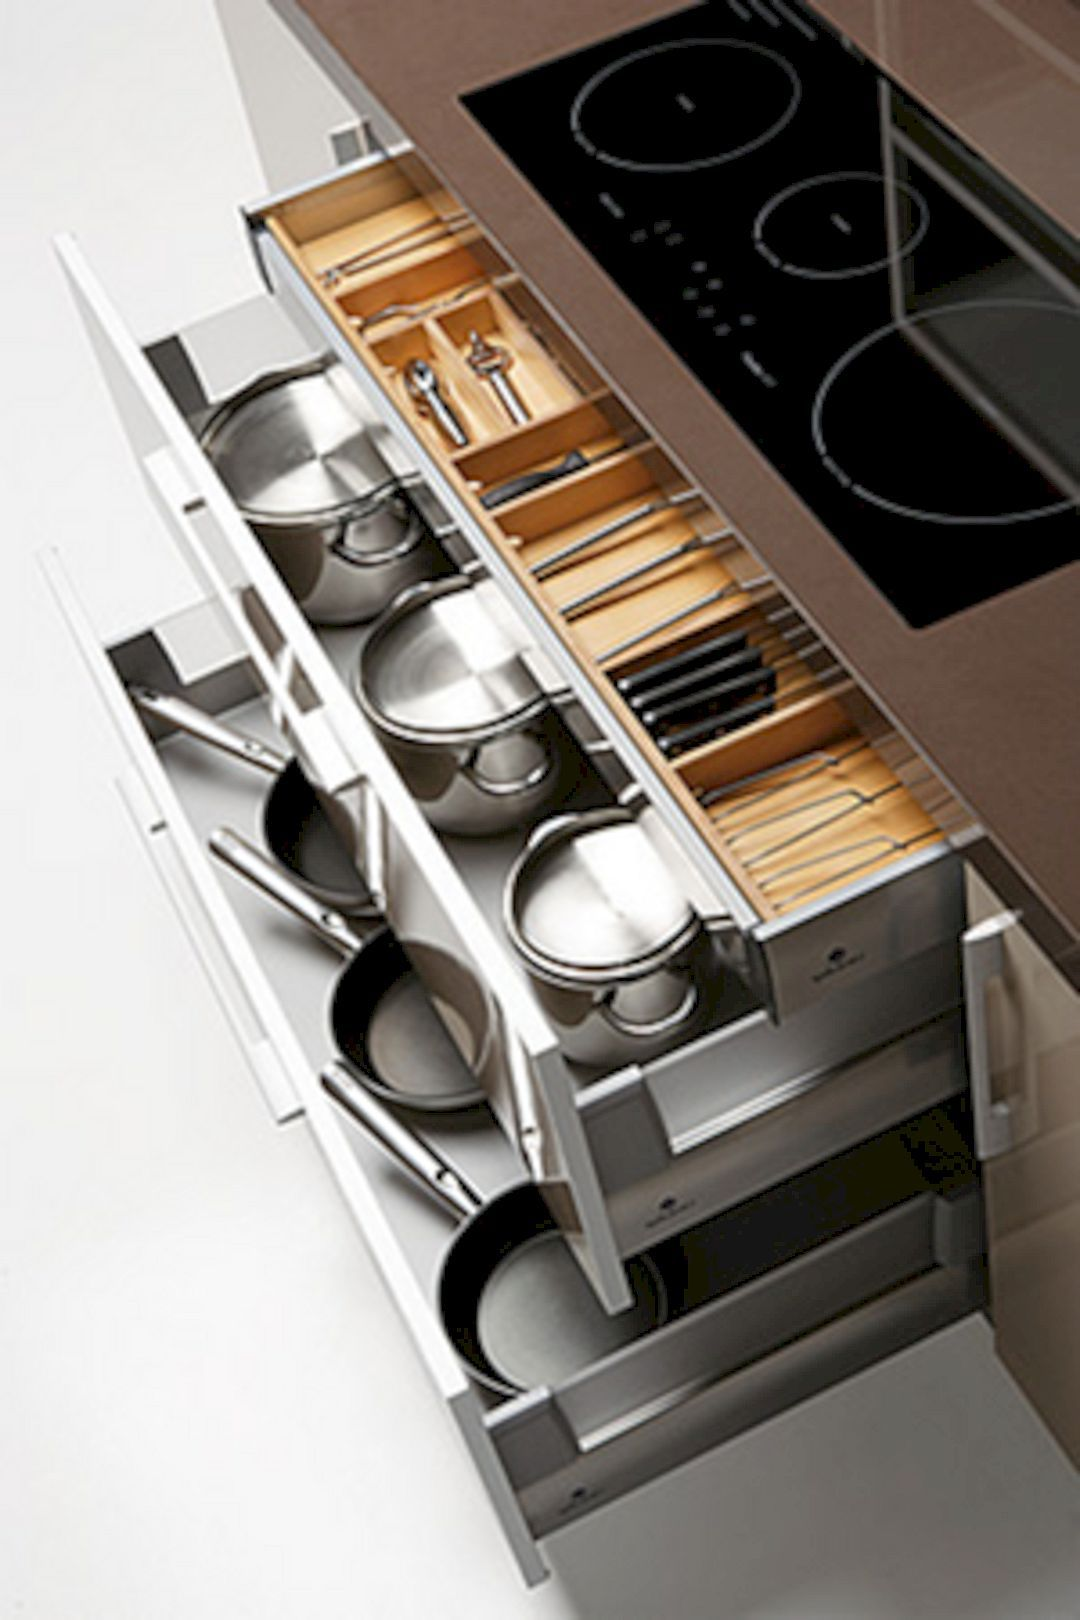 Top 7 Kitchen Organization Tips for Small House Clever